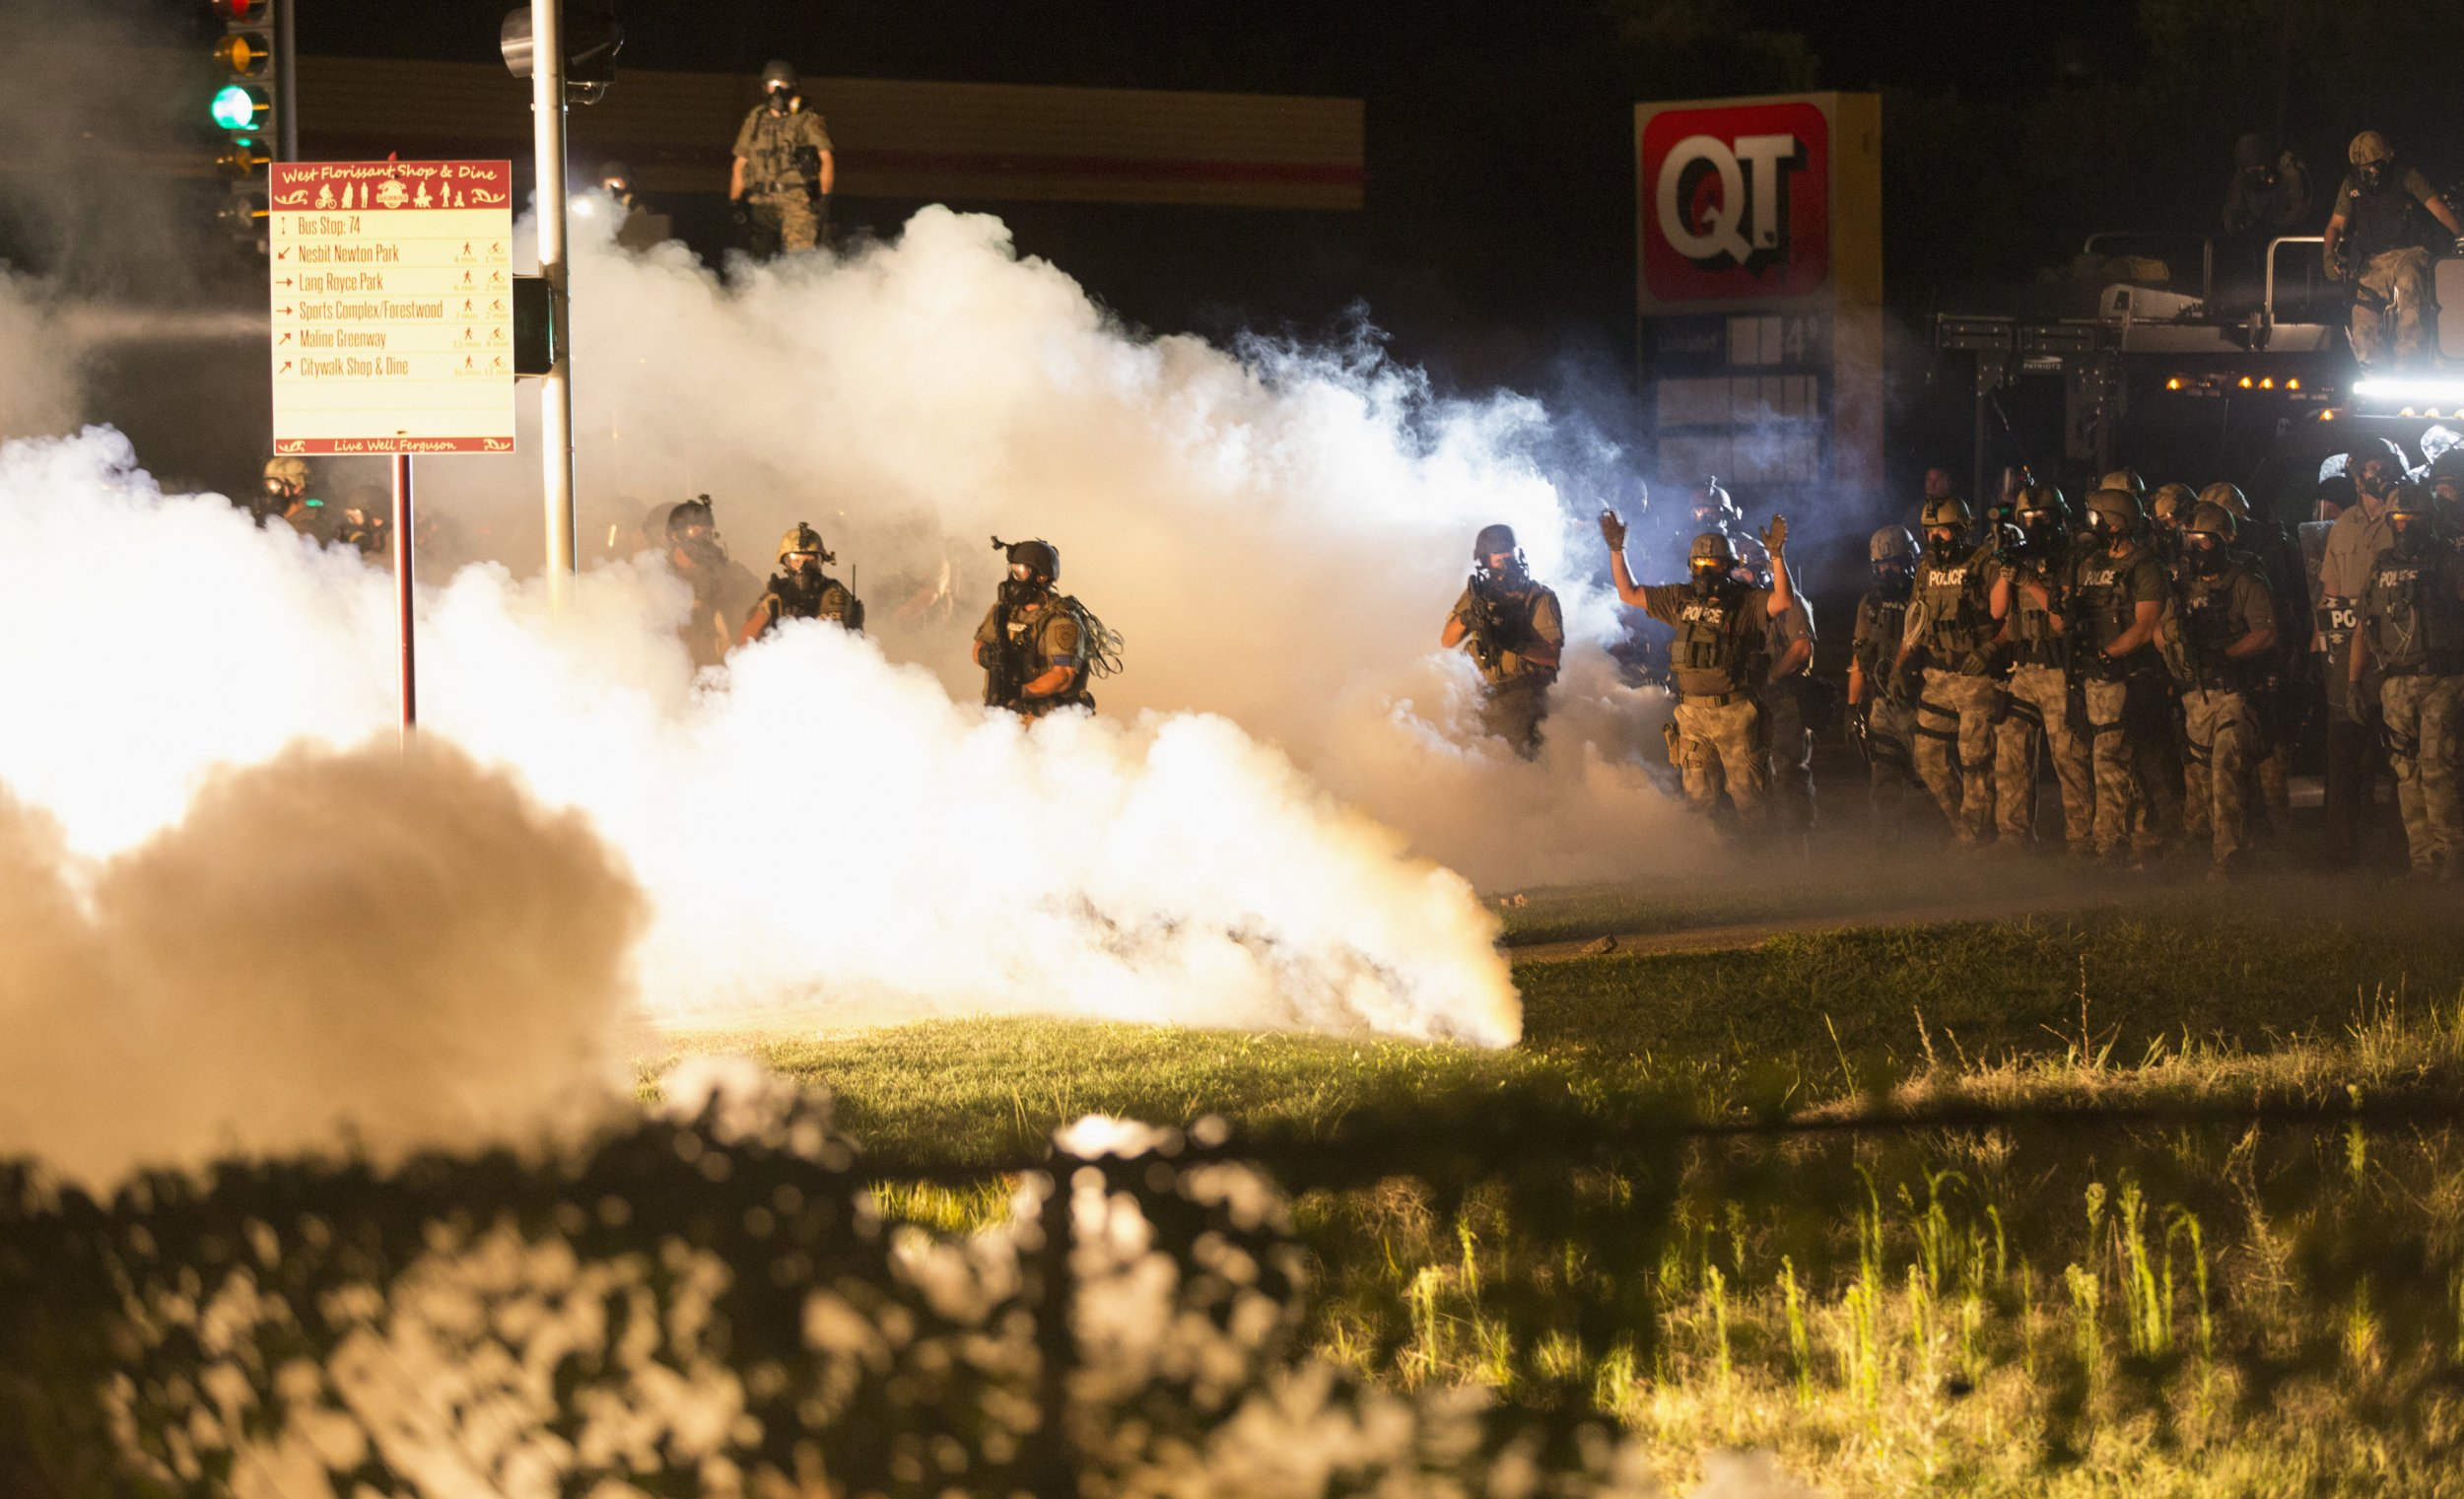 An attempt to restore order in 67% black Ferguson, where black rioters/looters/arsonists were put down by force